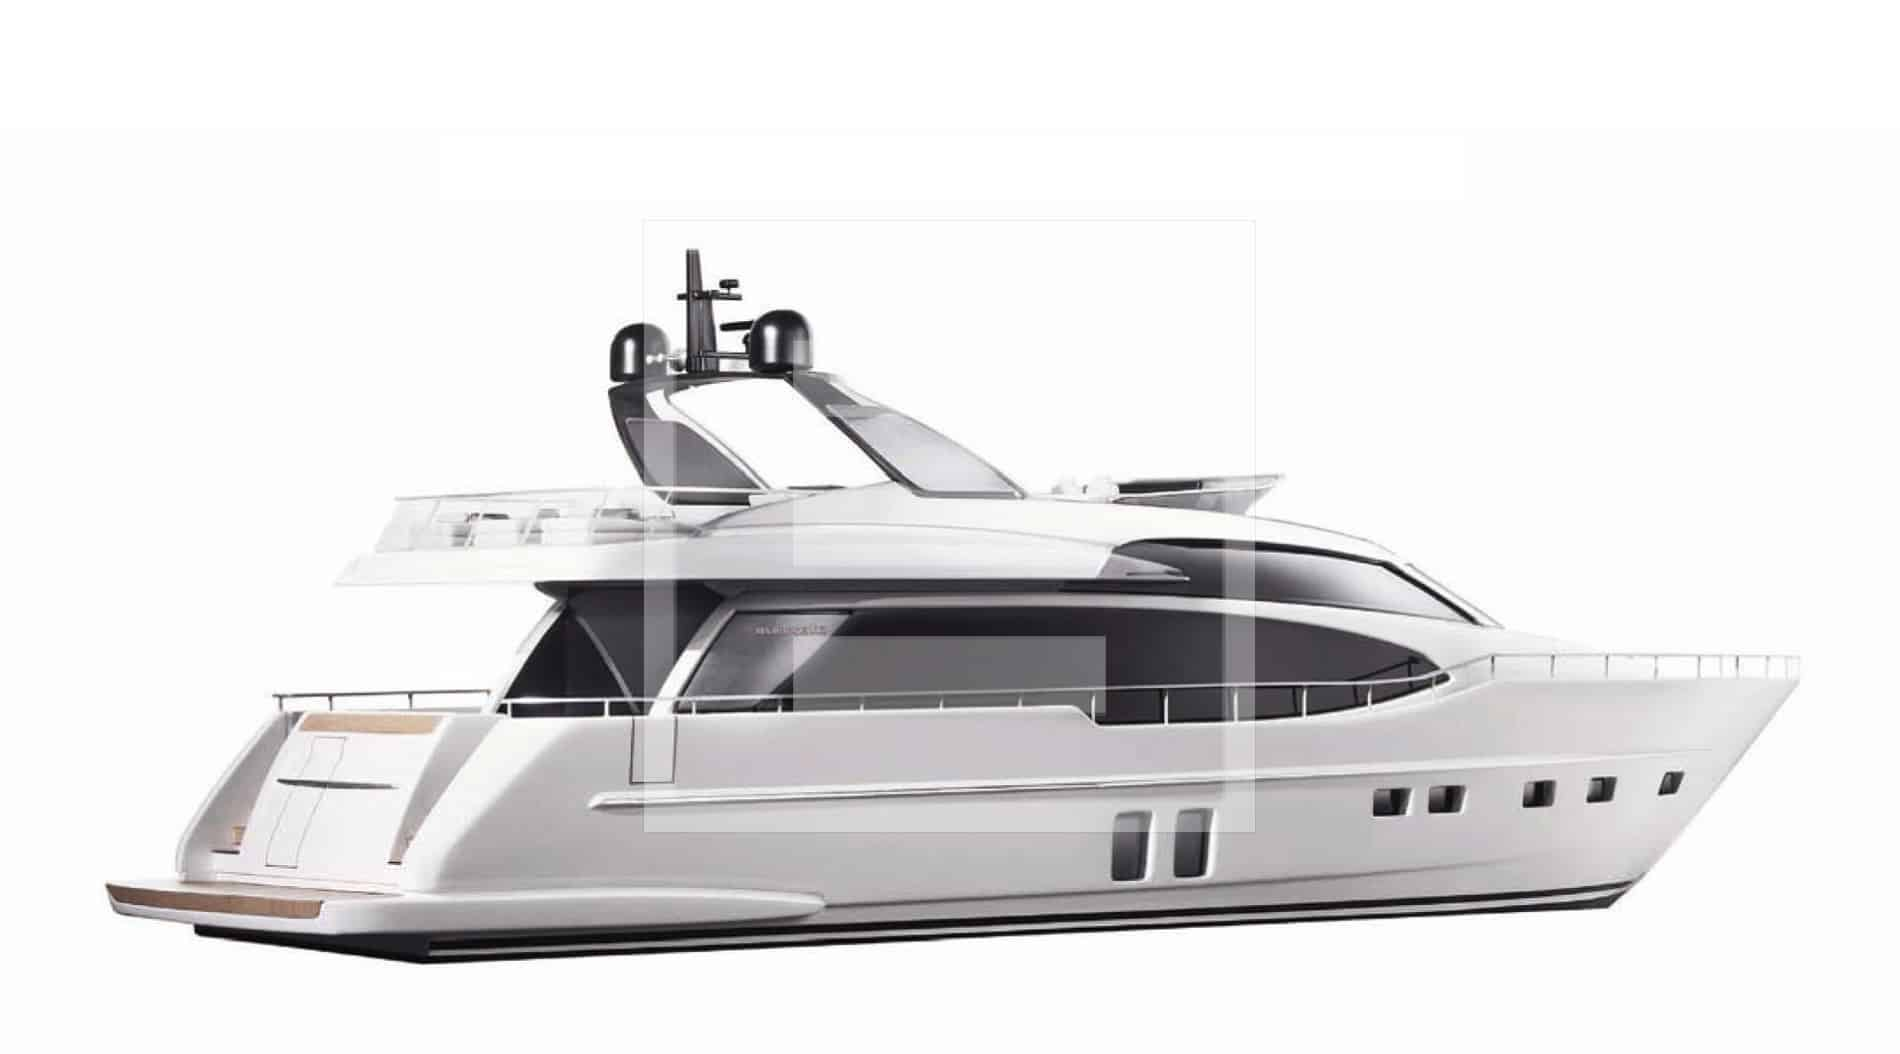 The SL76 yacht which has greatly optimised spaces with a plethora of innovations